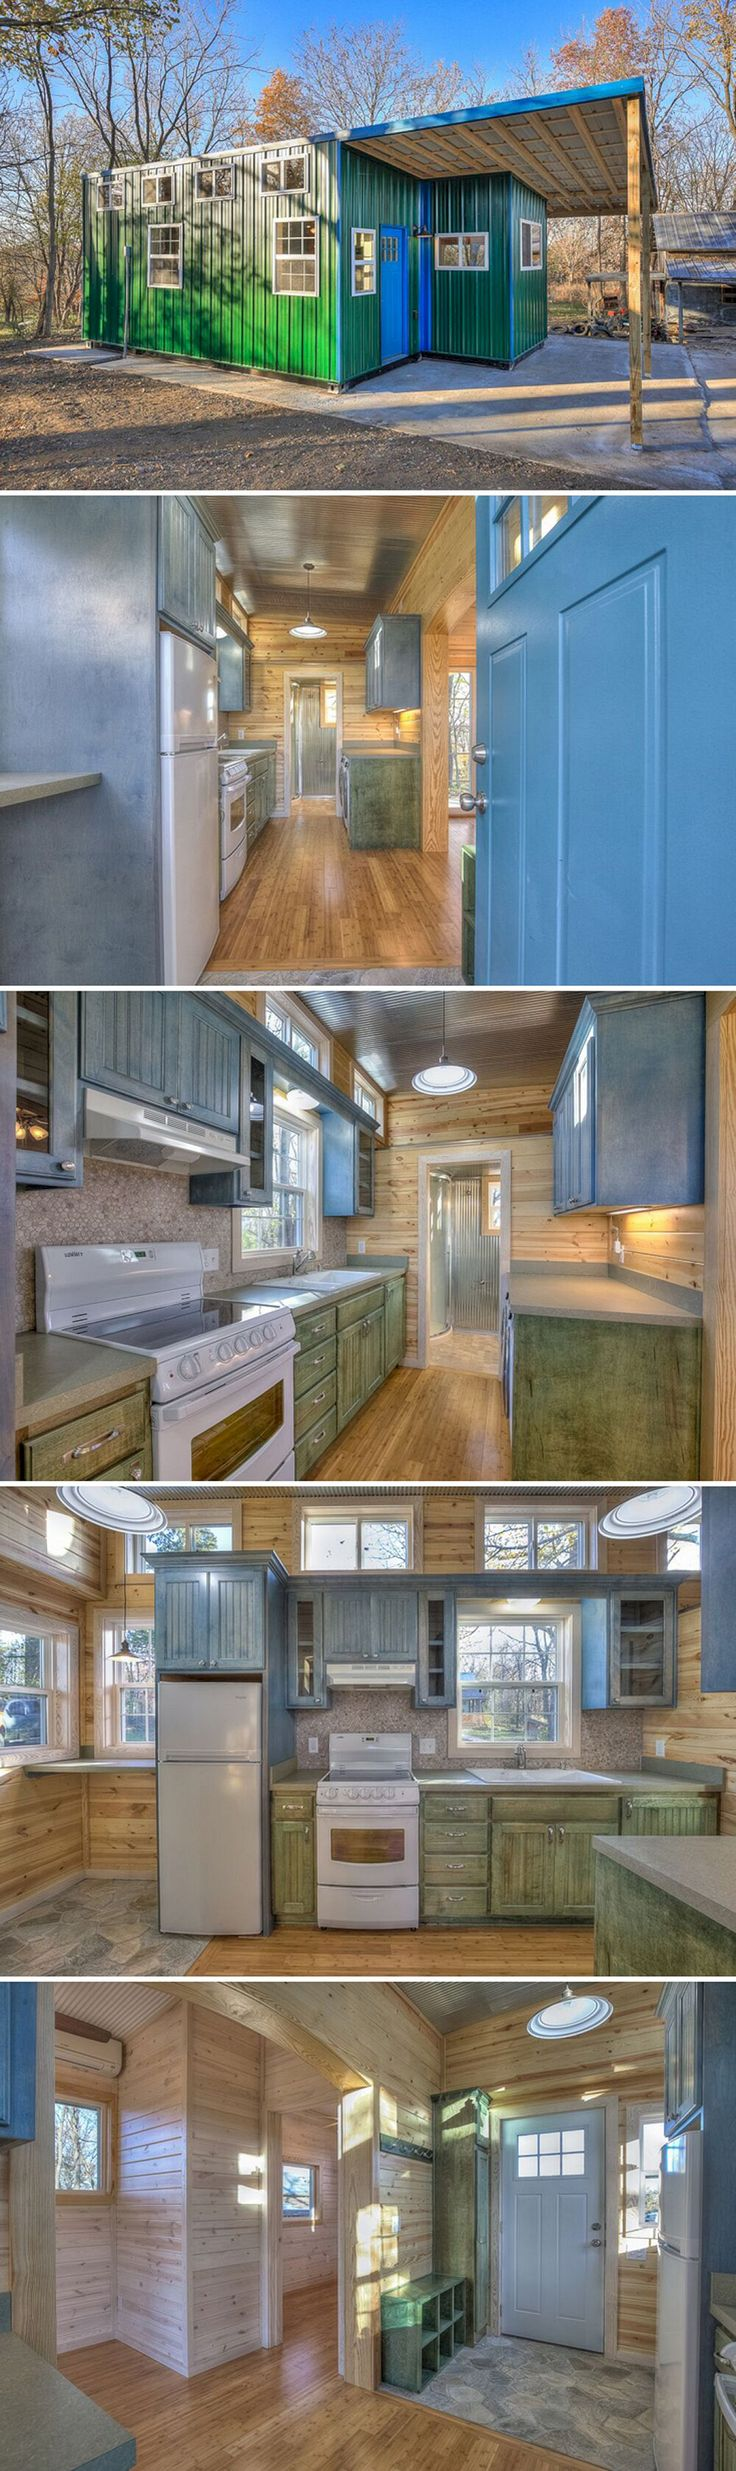 Brilliant 40+ Best and Stunning Tiny House on Wheels that You Must Have Right Now https://decoor.net/40-best-and-stunning-tiny-house-on-wheels-that-you-must-have-right-now-2056/